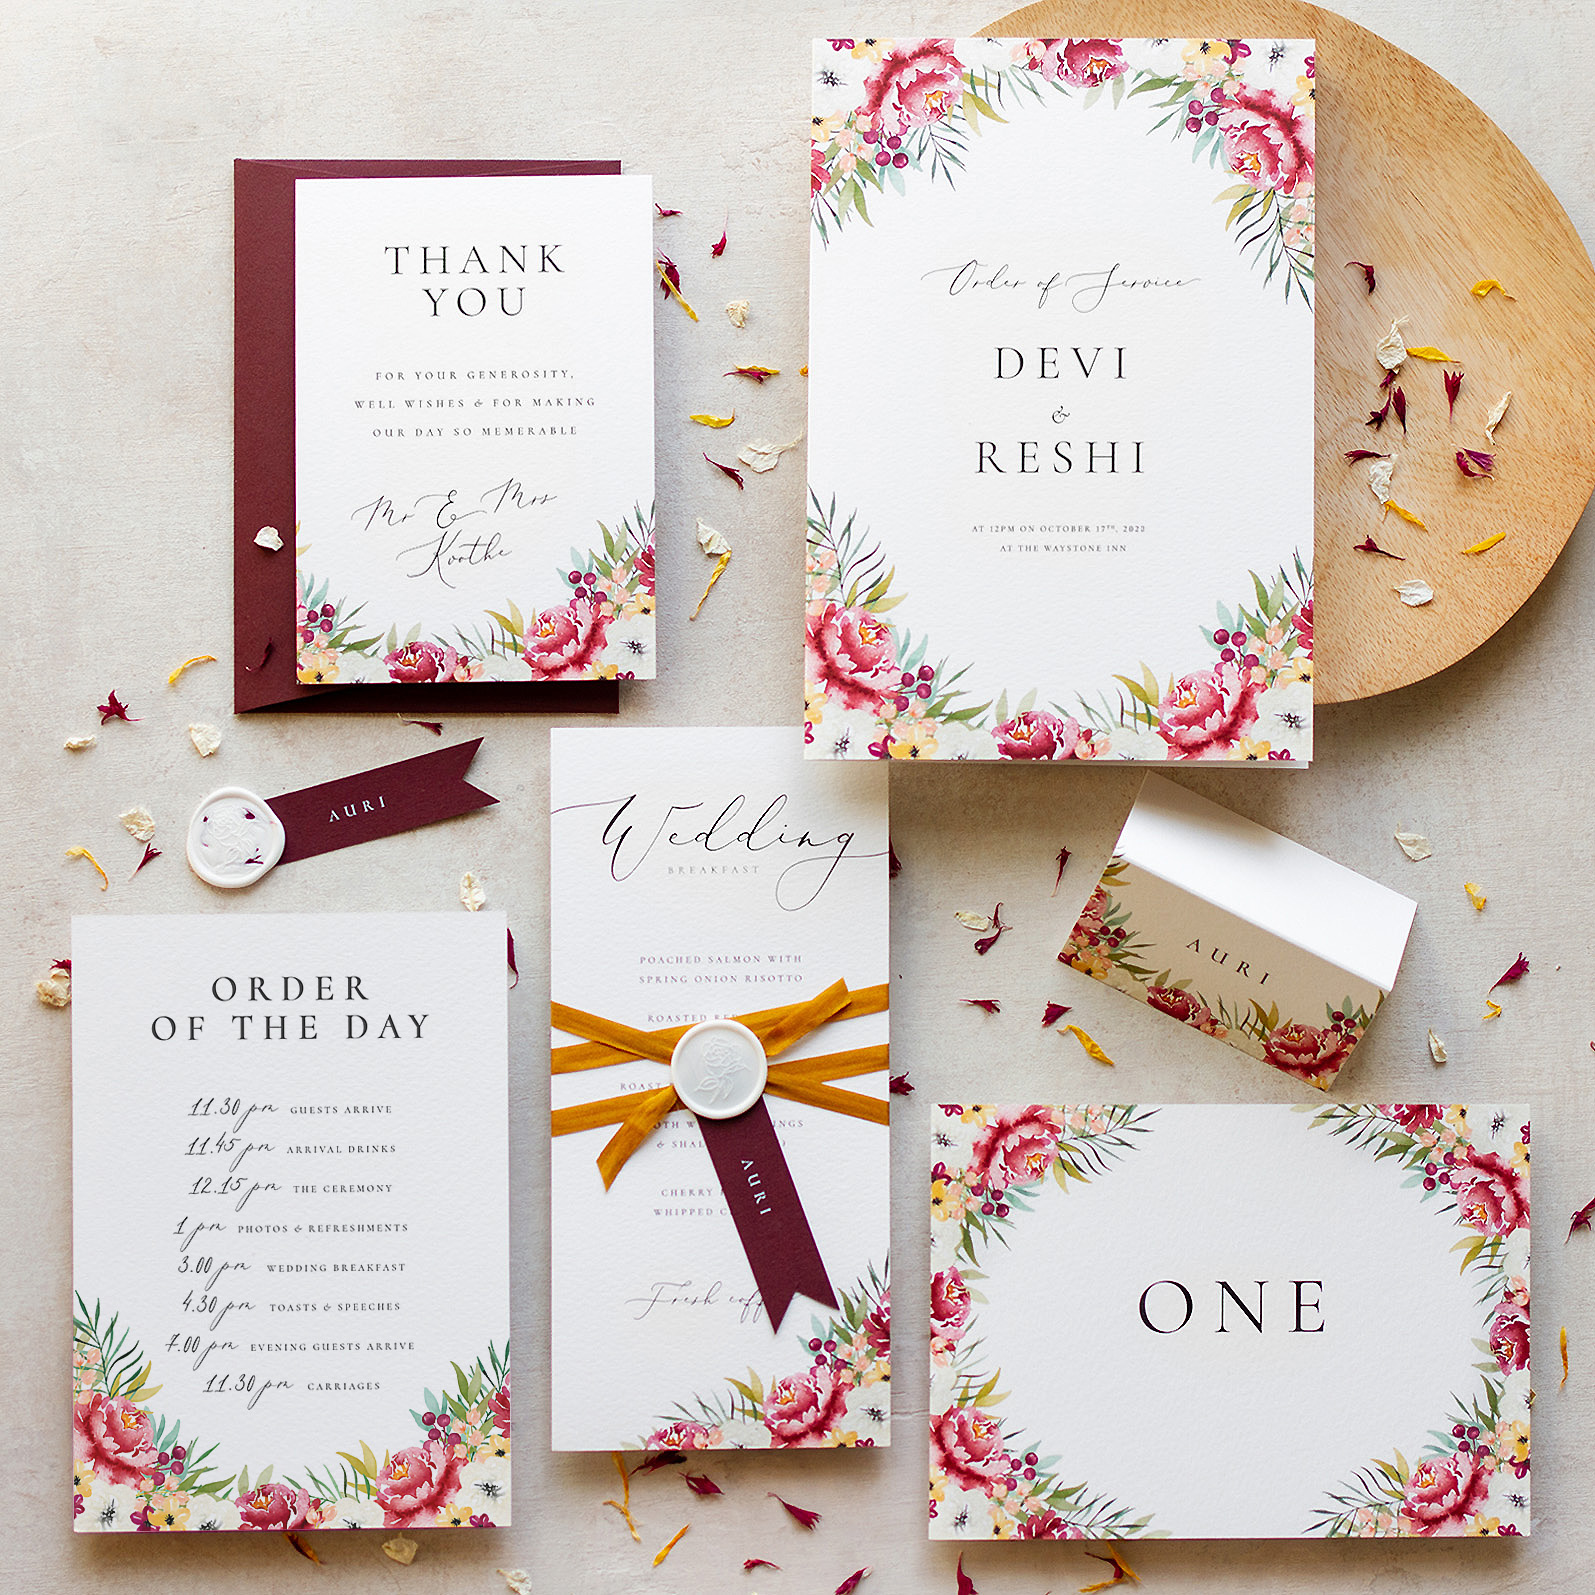 Autumn Leaves Luxury On The Day Wedding Stationery with Hand Painted Botanical Illustrations - www.pinglepie.com.jpg